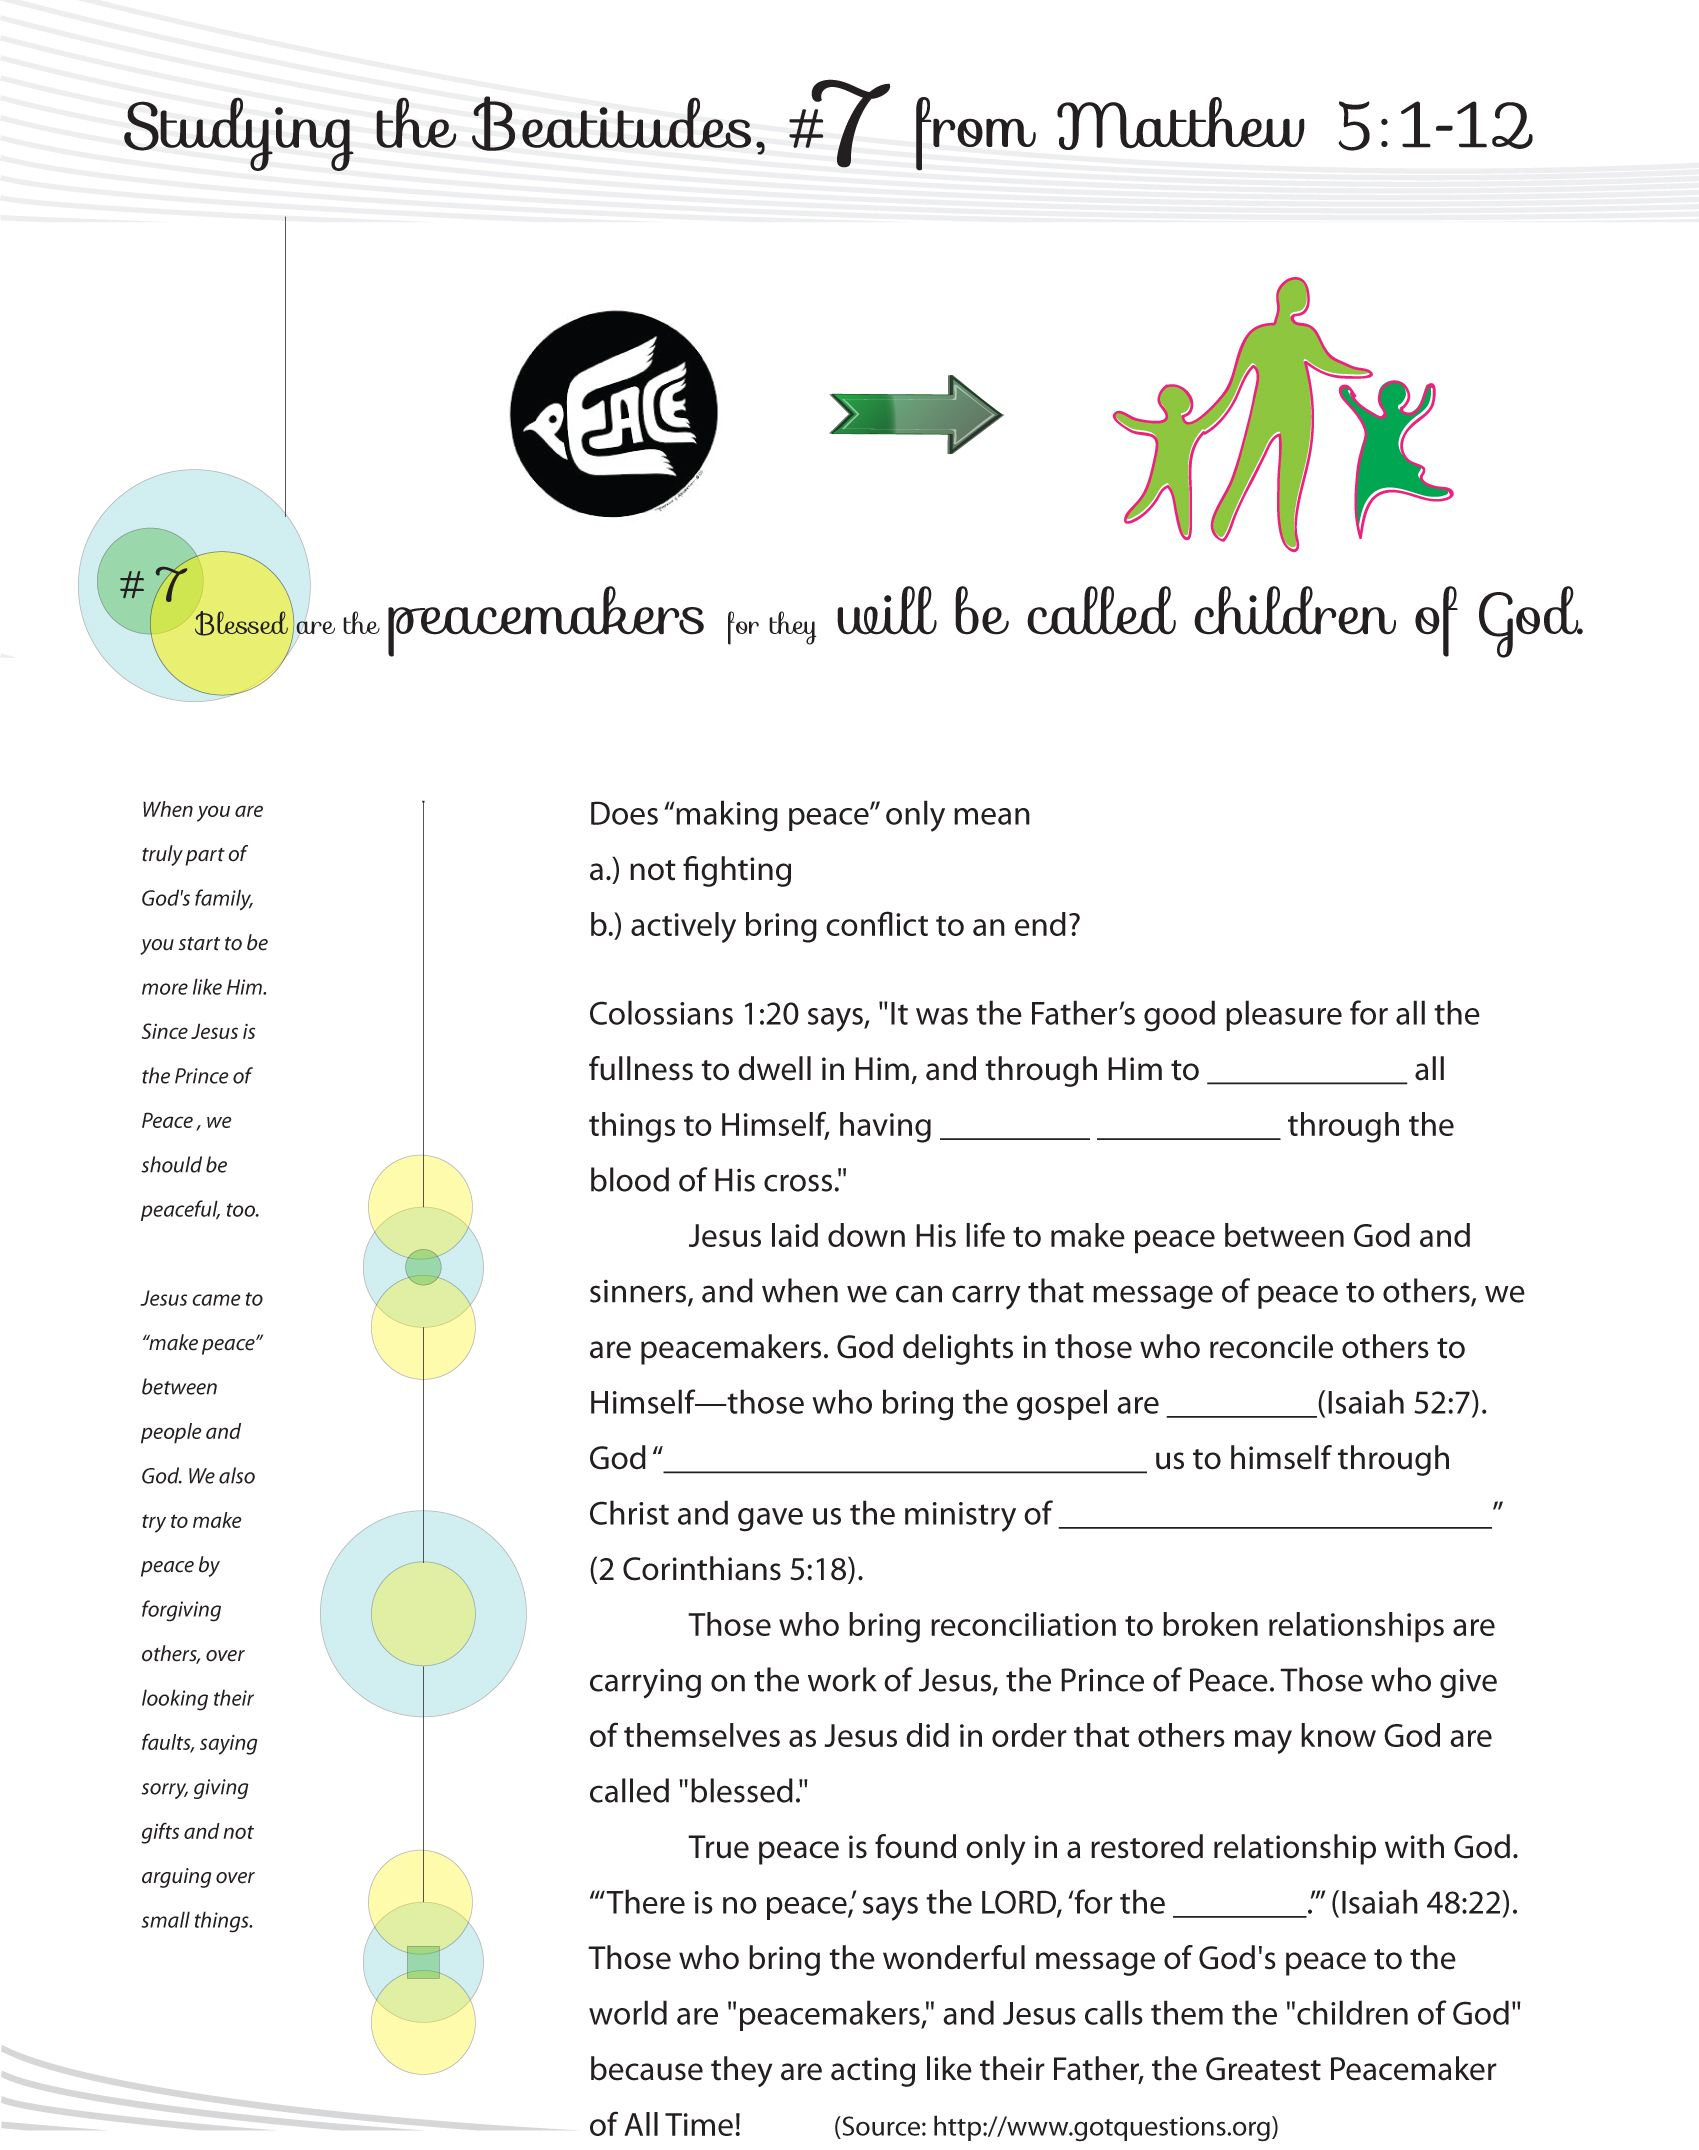 Worksheets Beatitudes Worksheet worksheet to teach the 7th beatitude of christian life from jesus teaching his famous sermon